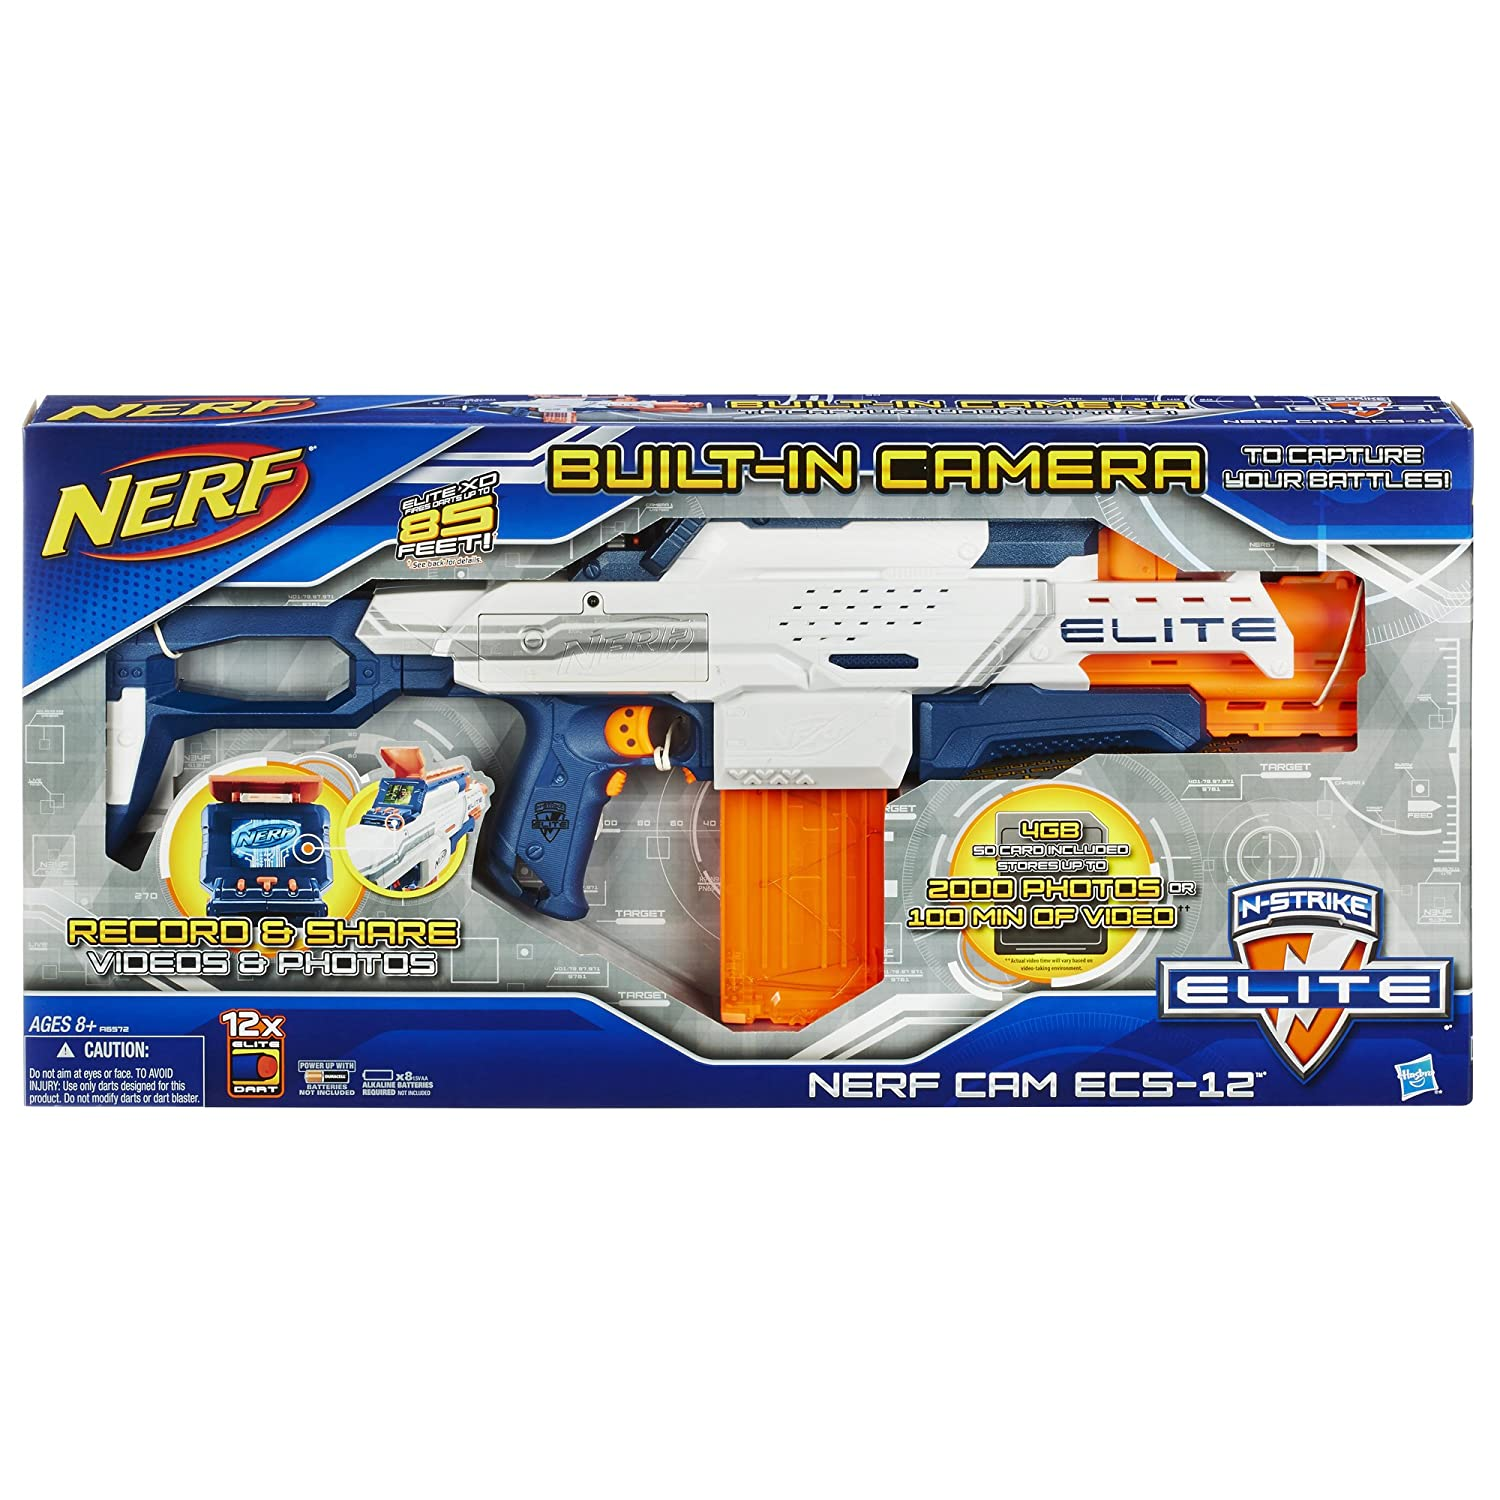 Amazon.com: Nerf N-Strike Elite Nerf Cam ECS-12 Blaster(Discontinued by  manufacturer): Toys & Games